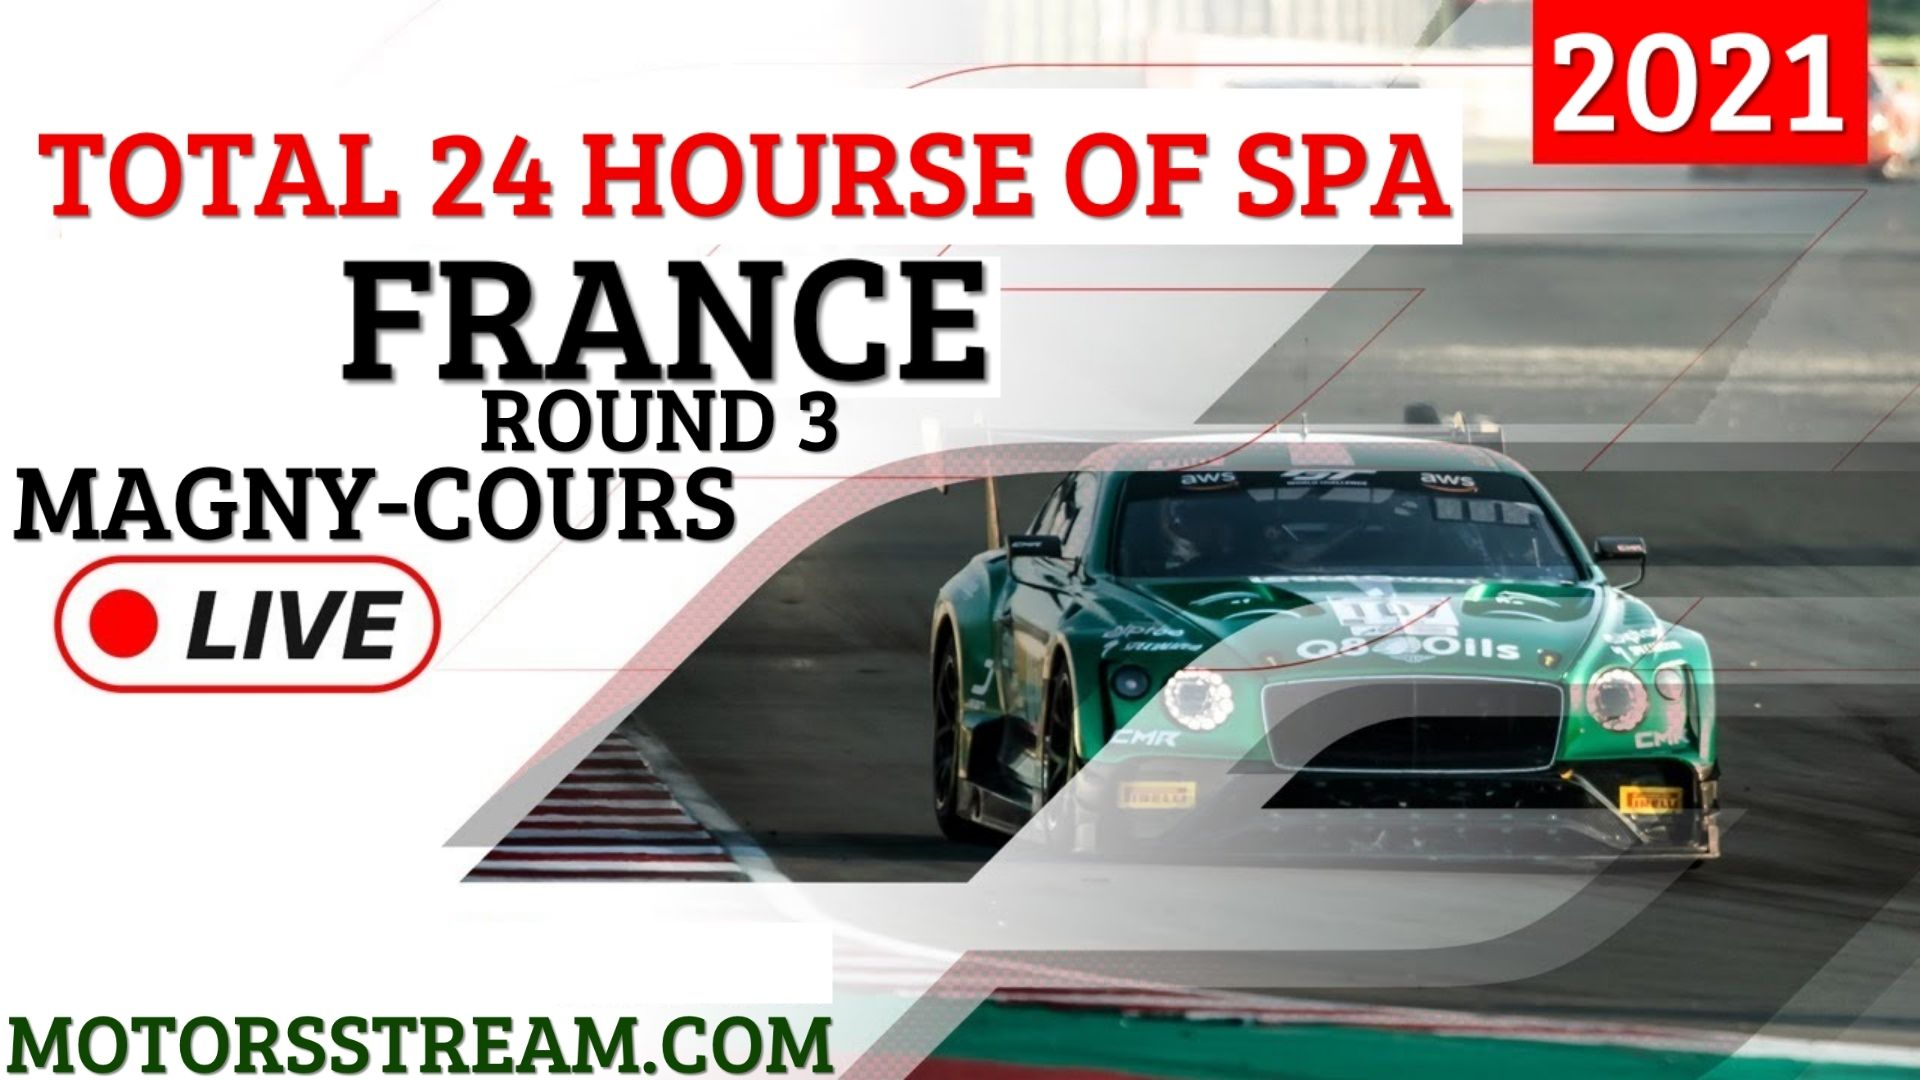 24 Hourse Of Spa Magny Cours Live Stream 2021 | Round 3